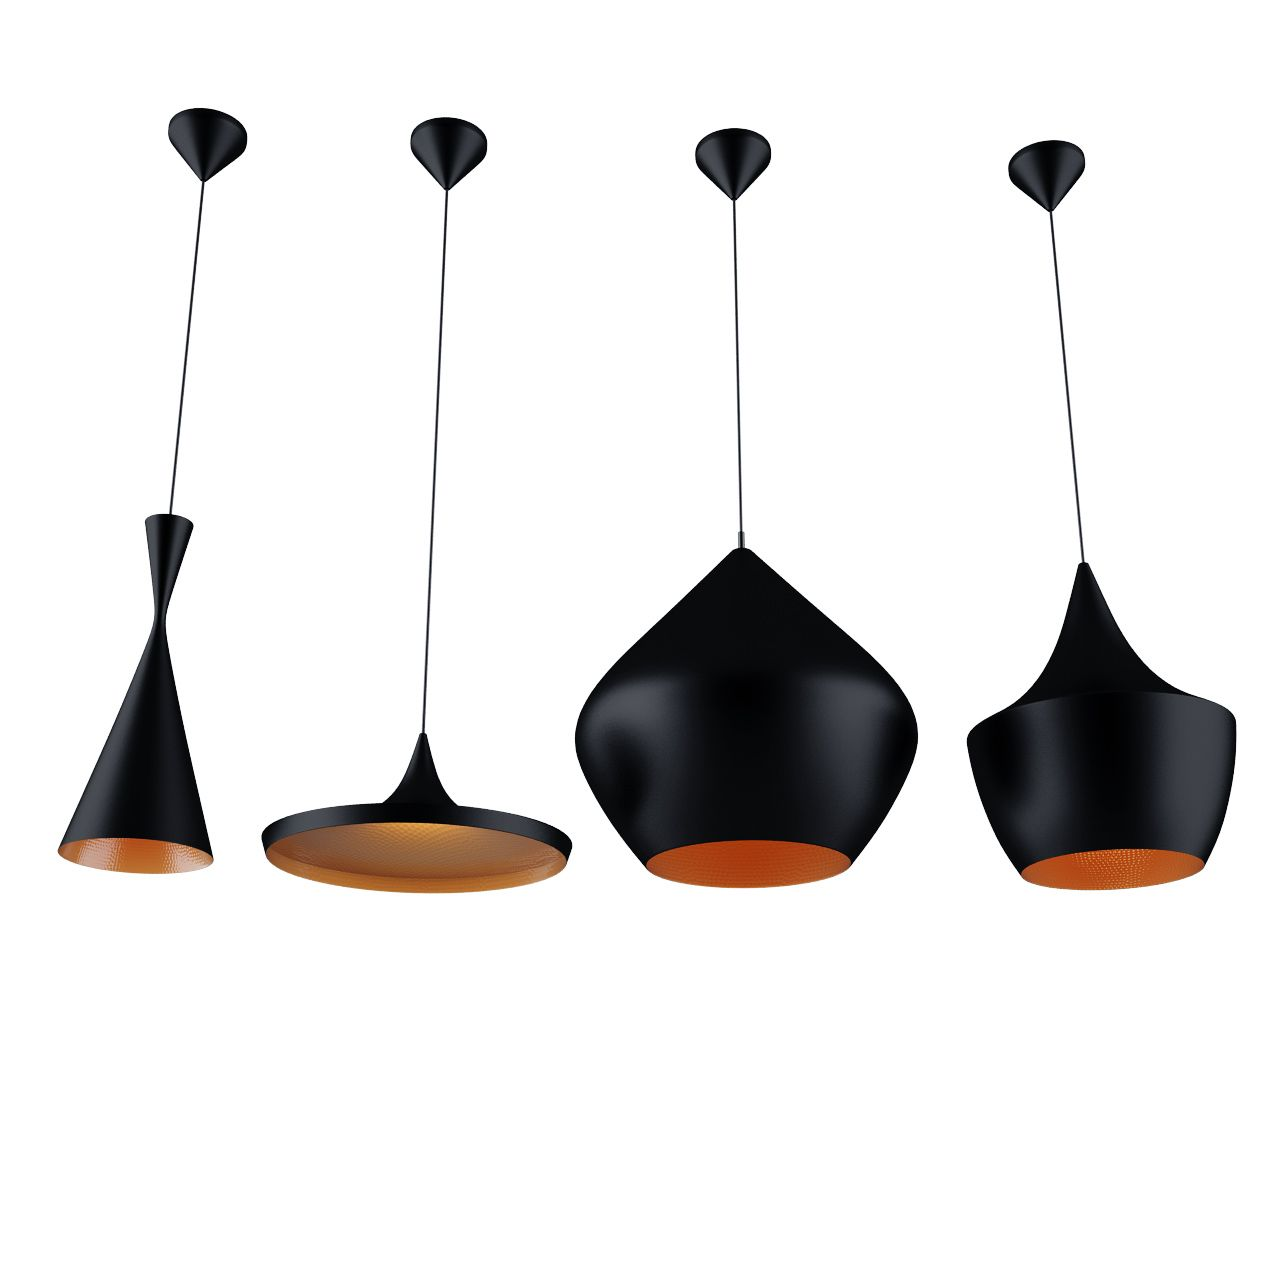 Free 3d model well known beat lights by tom dixon all Tom dixon lighting